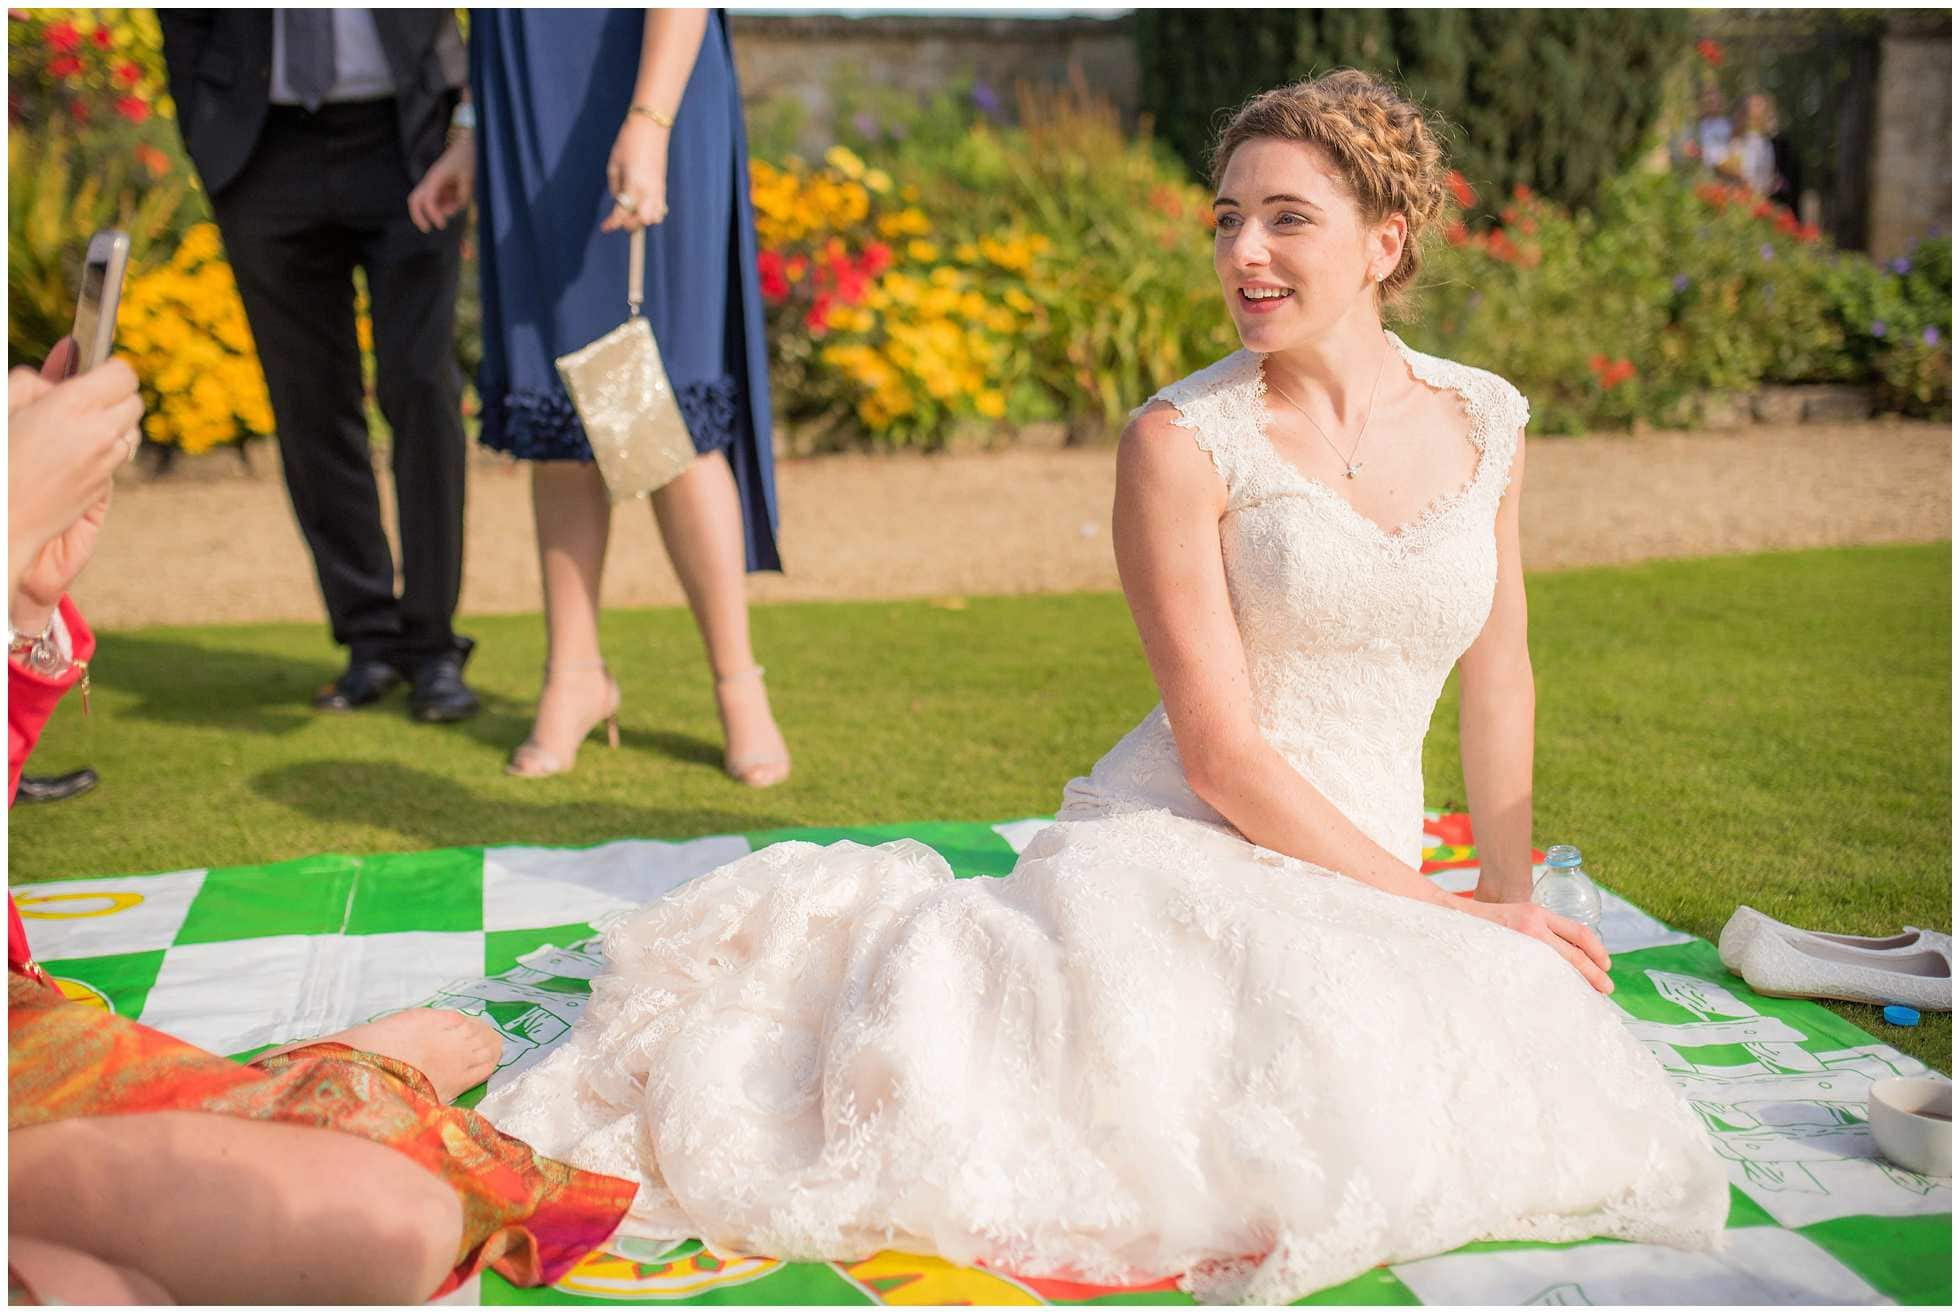 A stunning bride chilling